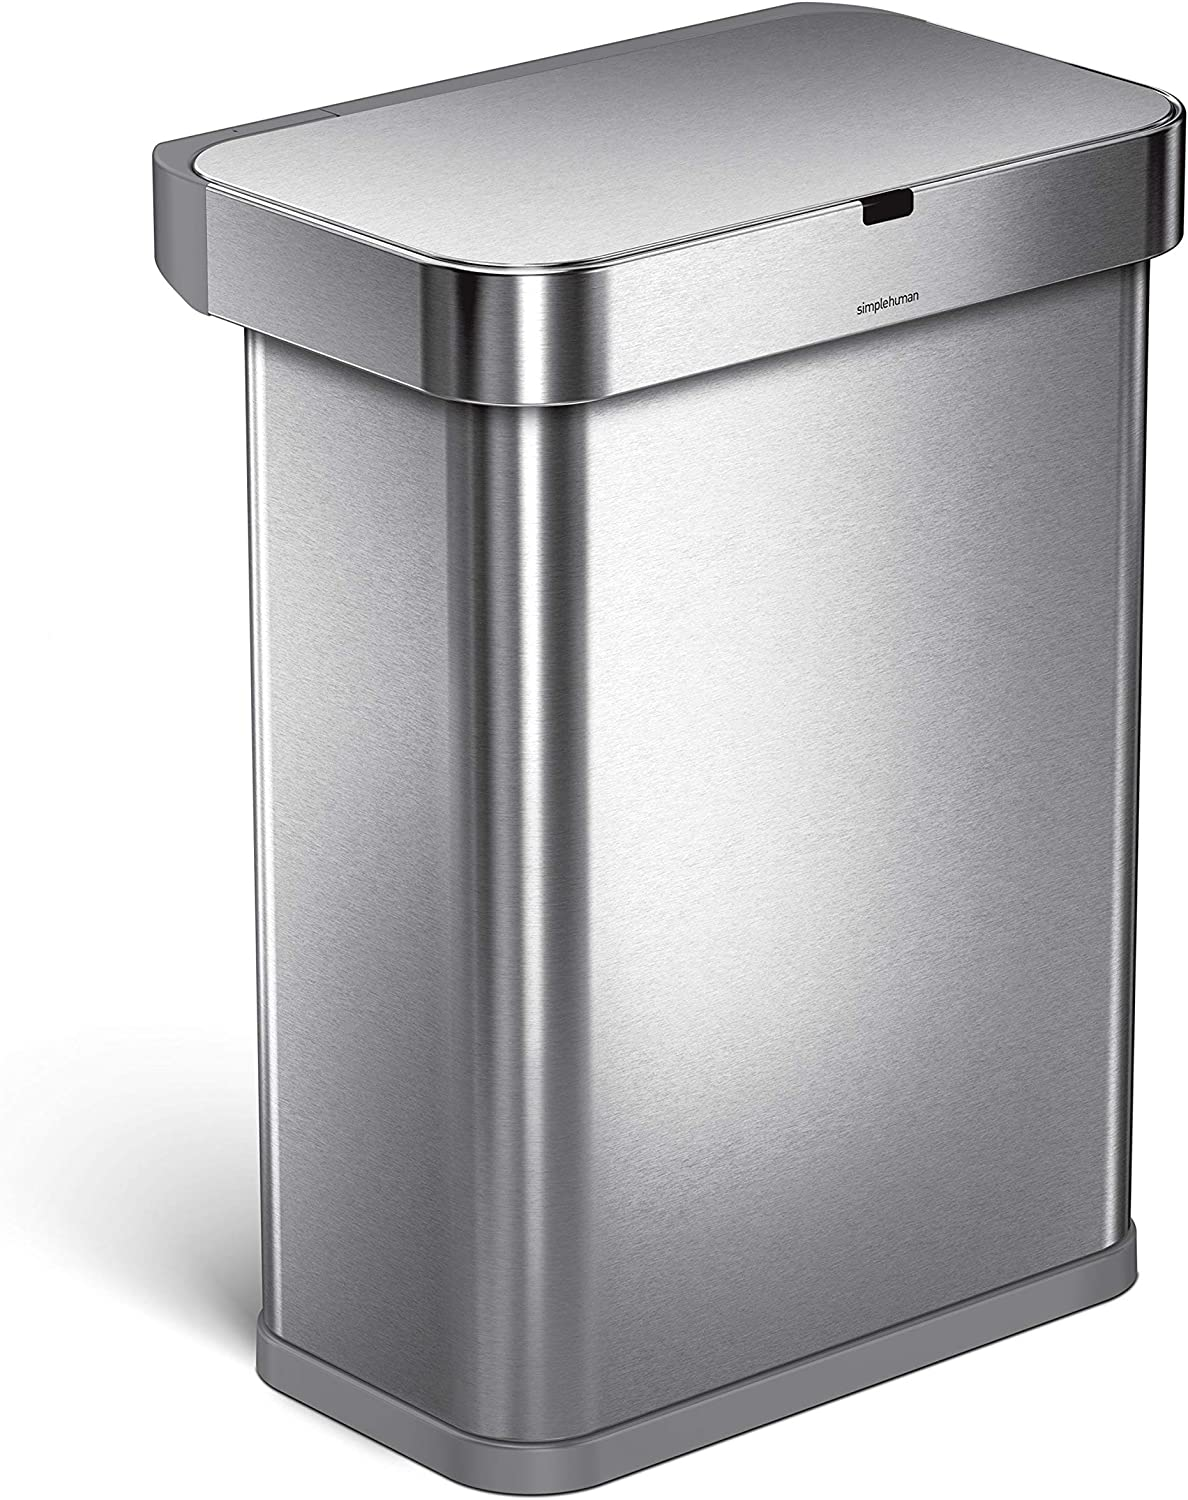 simplehuman 58 Liter / 15.3 Gallon Stainless Steel Touch-Free Rectangular  Kitchen Sensor Trash Can with Voice and Motion Sensor, Voice Activated, ...